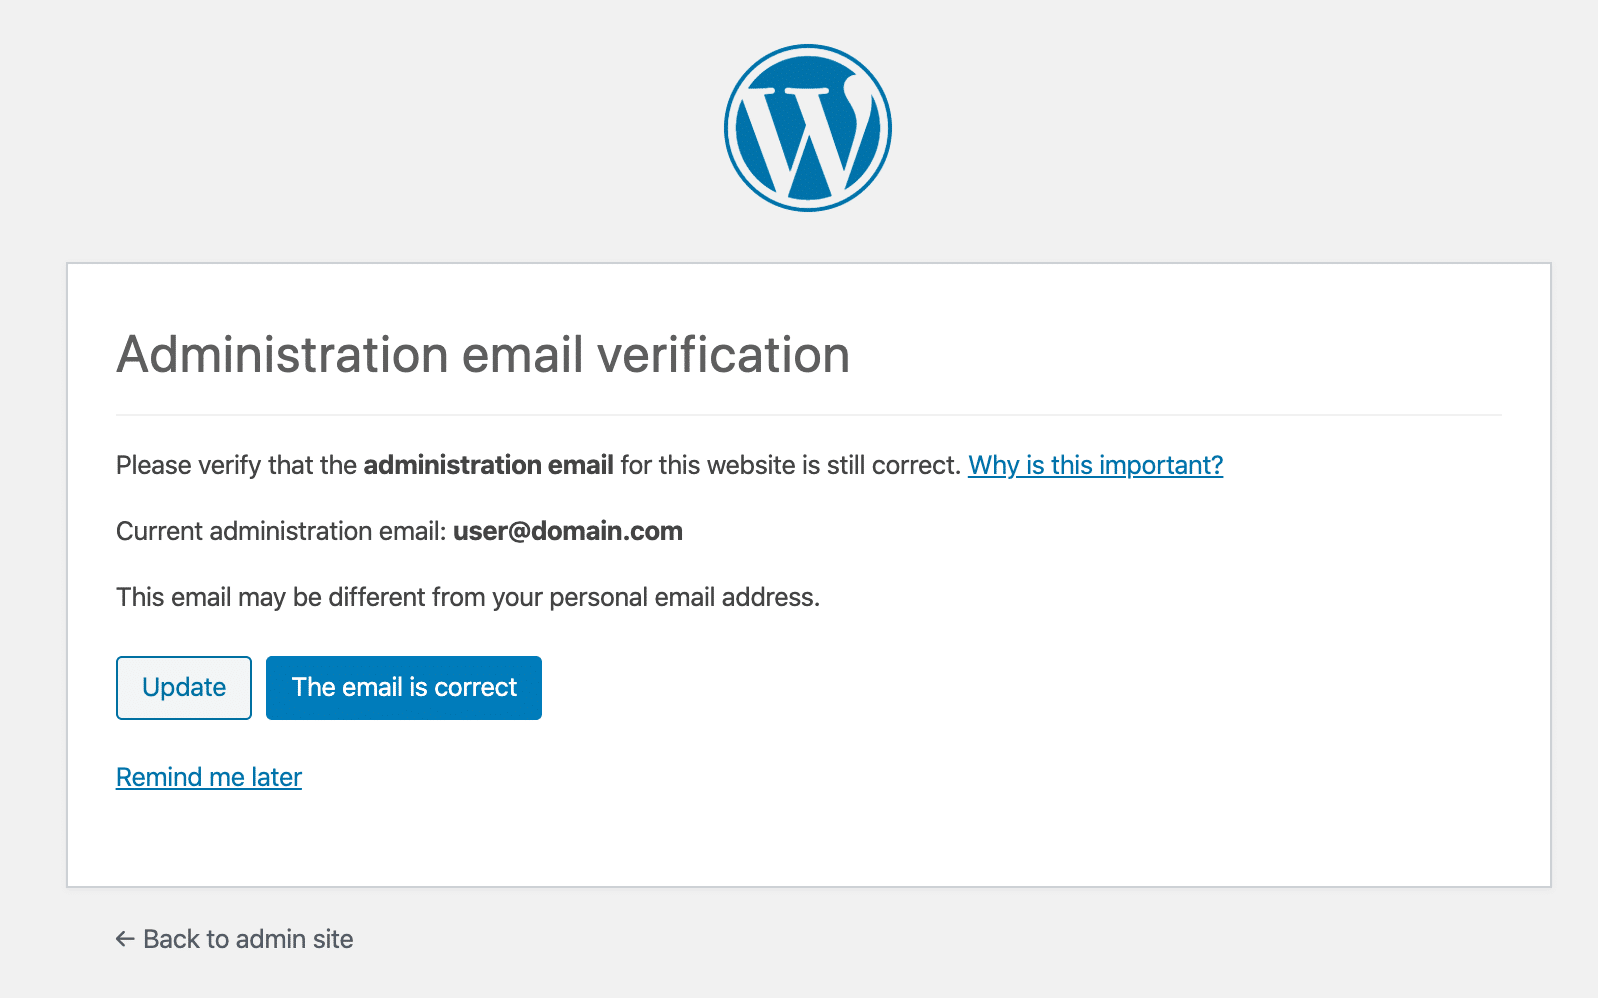 Verifiering av e-postadministratör via WordPress